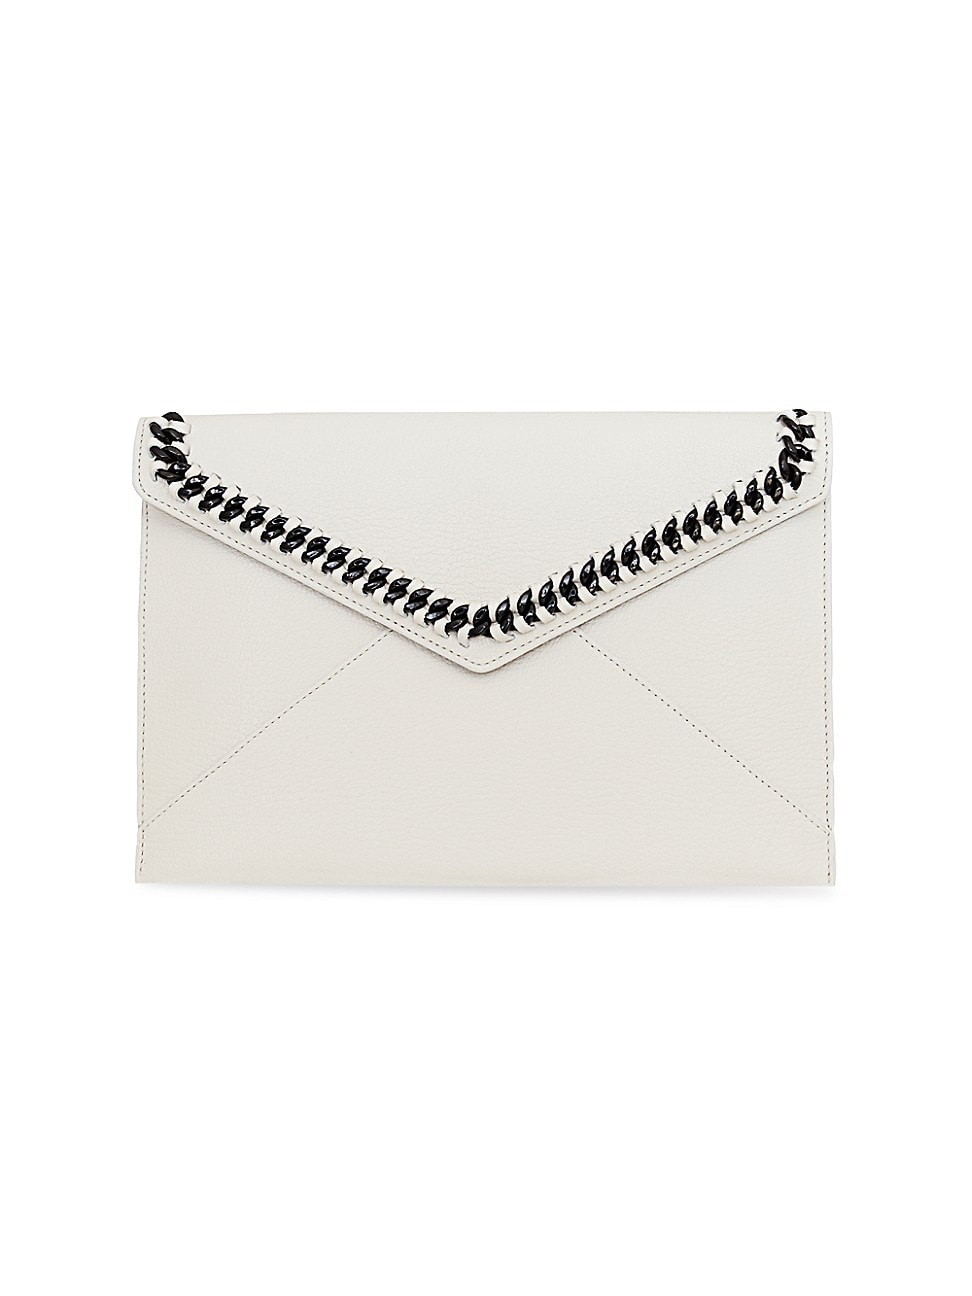 Rebecca Minkoff Leathers WOMEN'S LEO CHAIN-TRIMMED LEATHER ENVELOPE CLUTCH